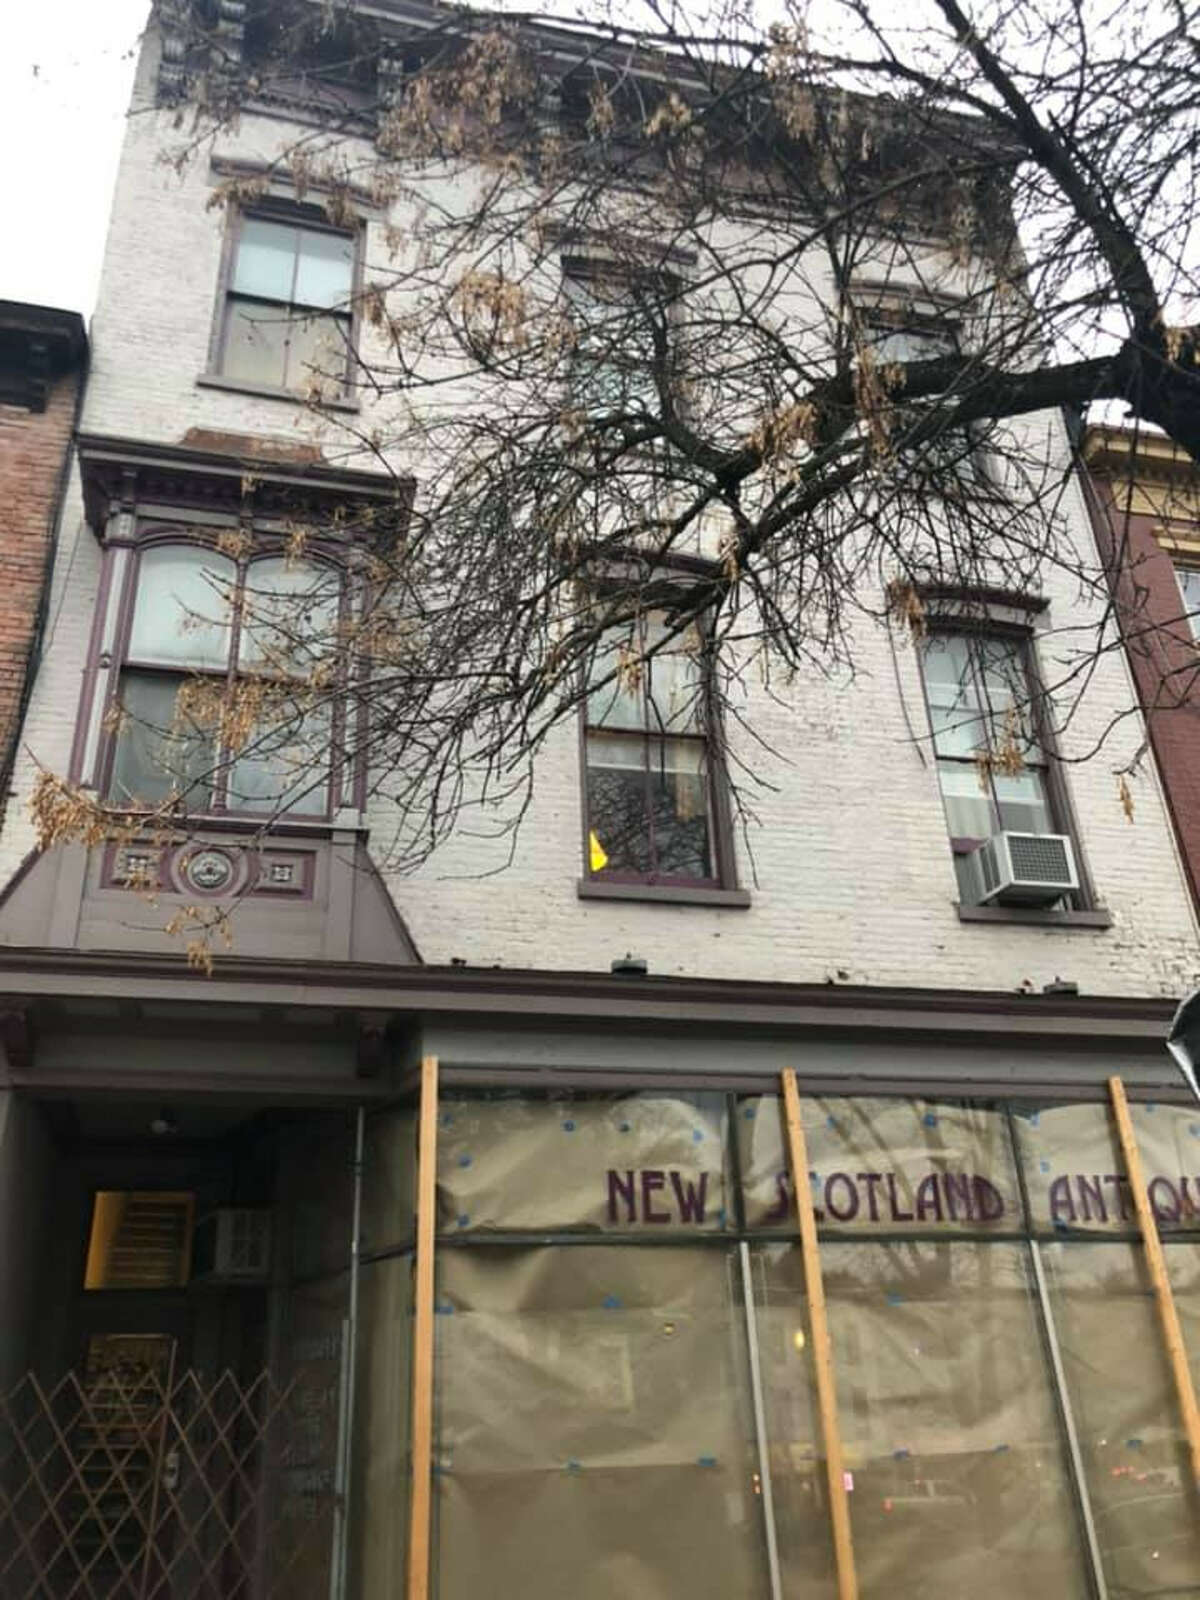 After seven years at 236 Washington Ave. in Albany, Umana Restaurant & Wine Bar is moving two doors down, to the former New Scotland Antiques building. (Provided photo.)